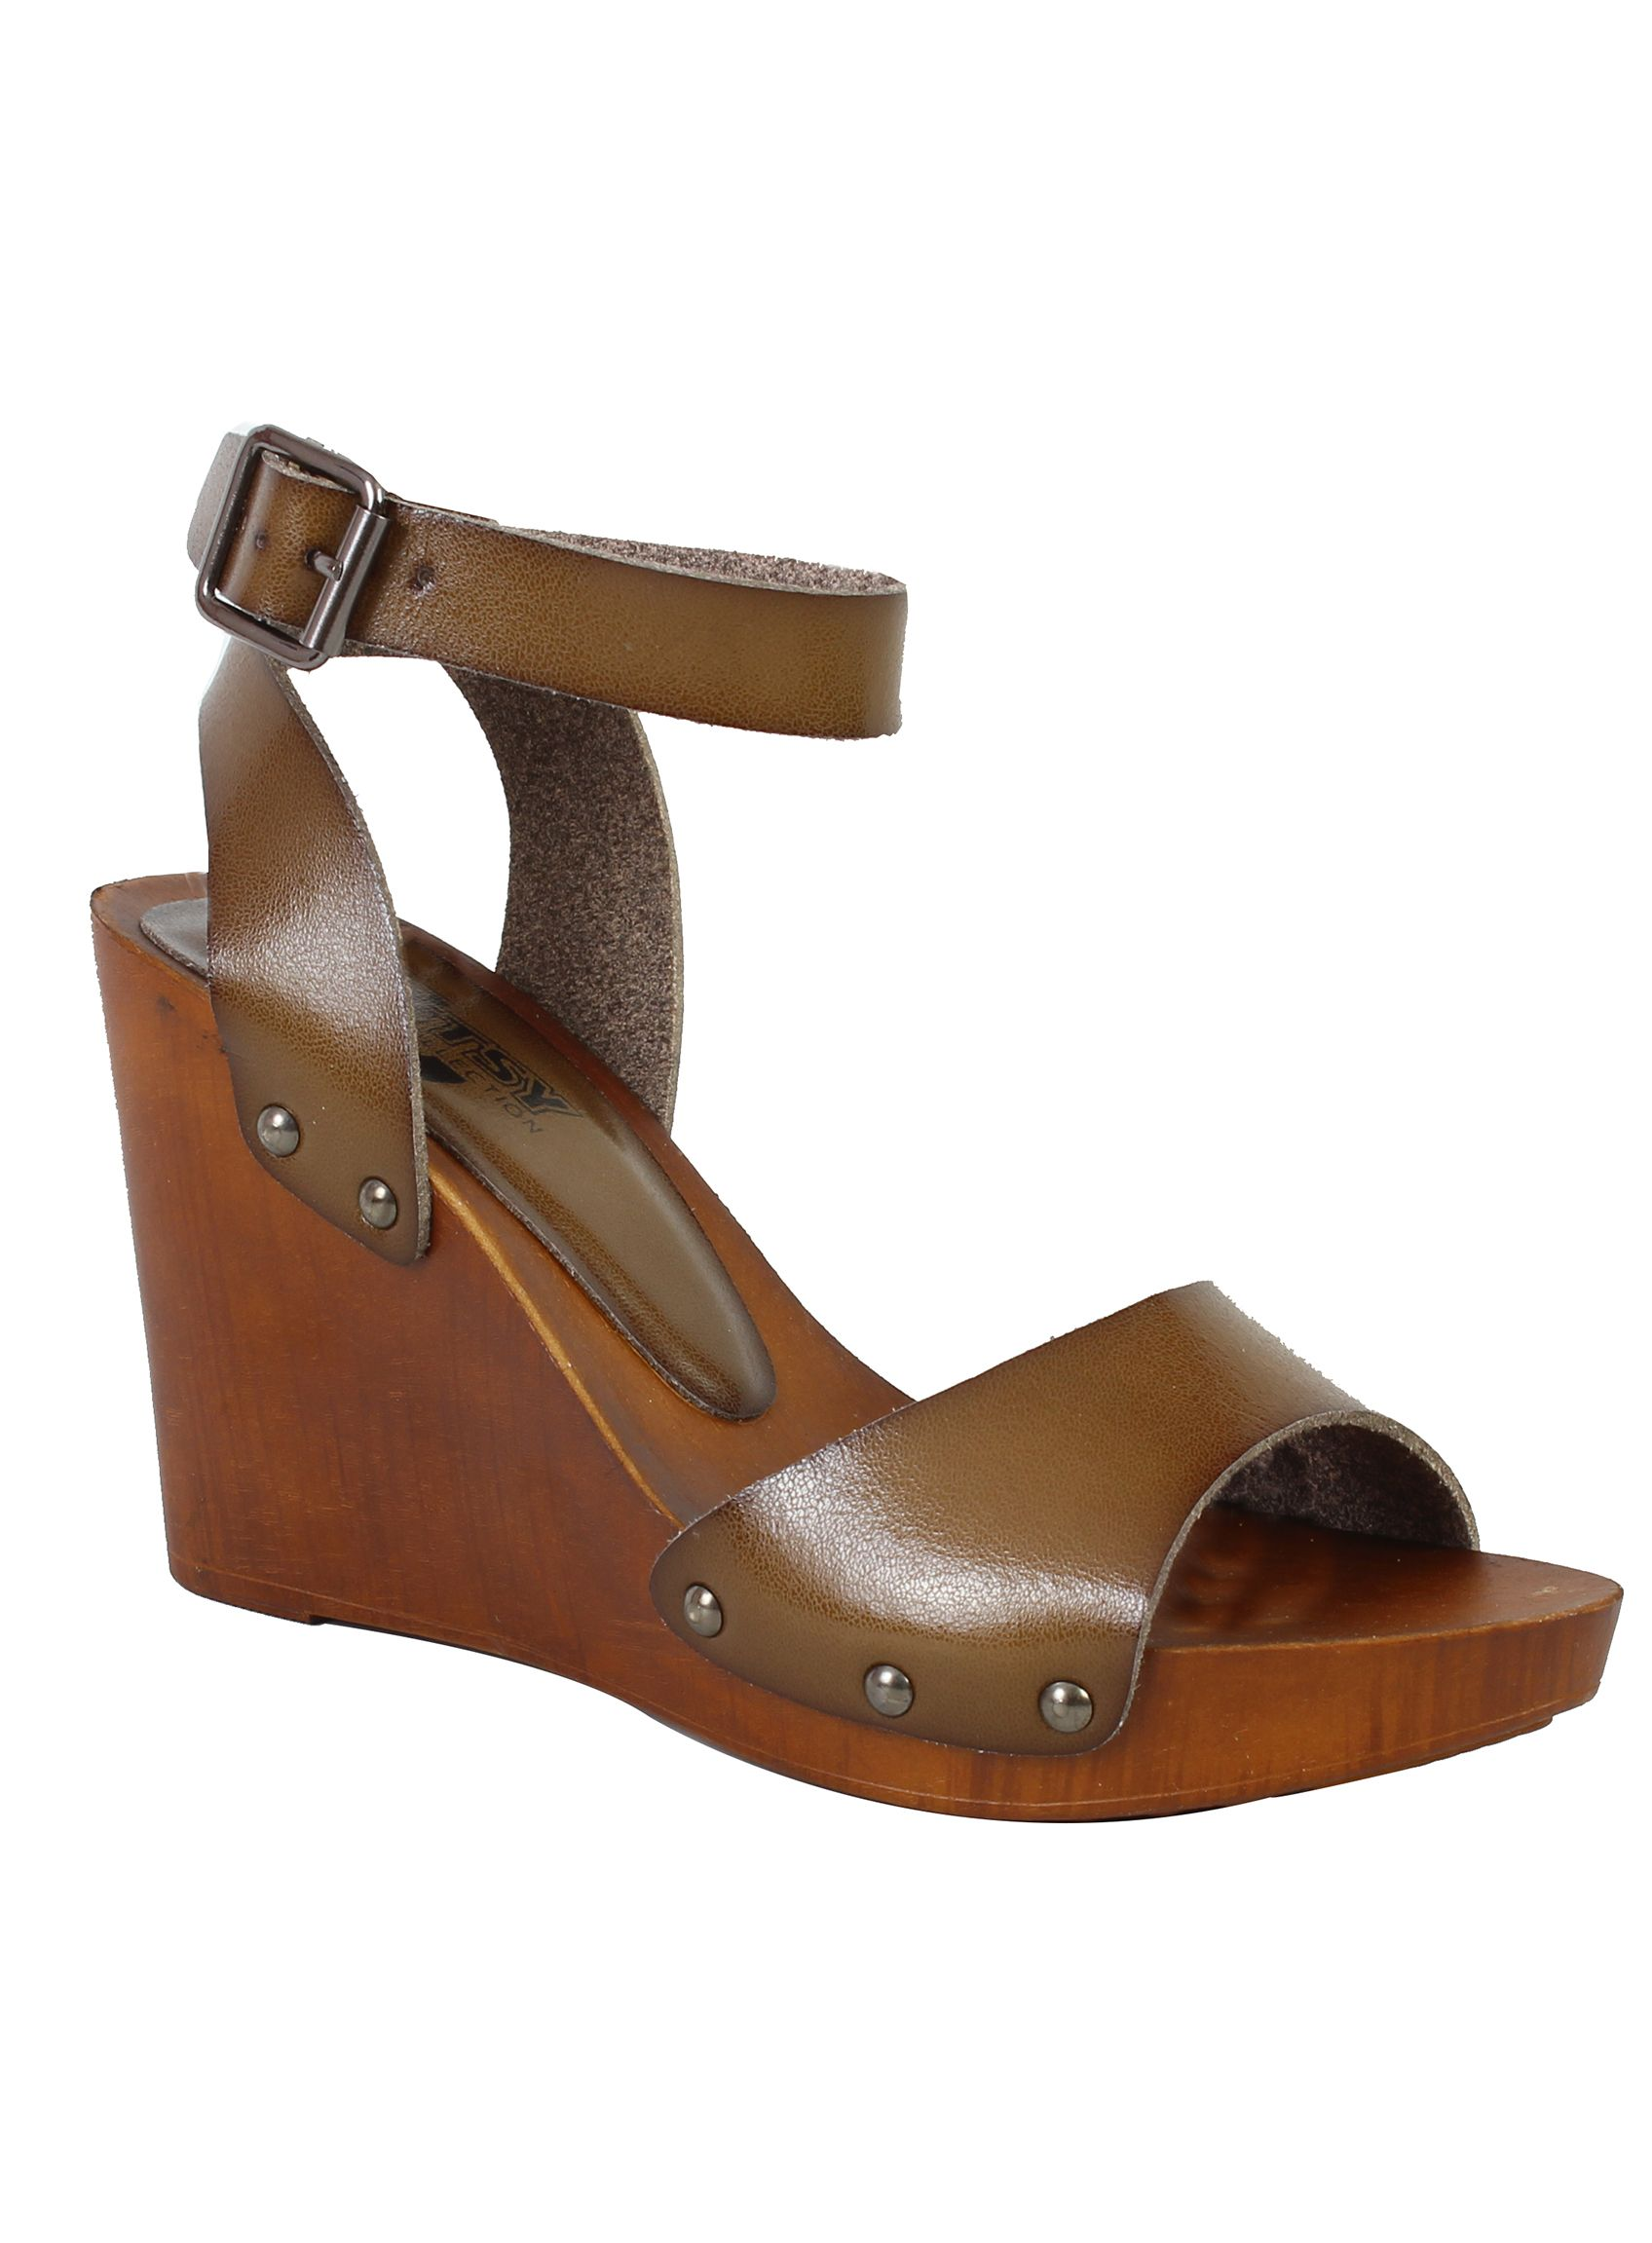 Betsy Betsy Wooden wedges, Medium Brown